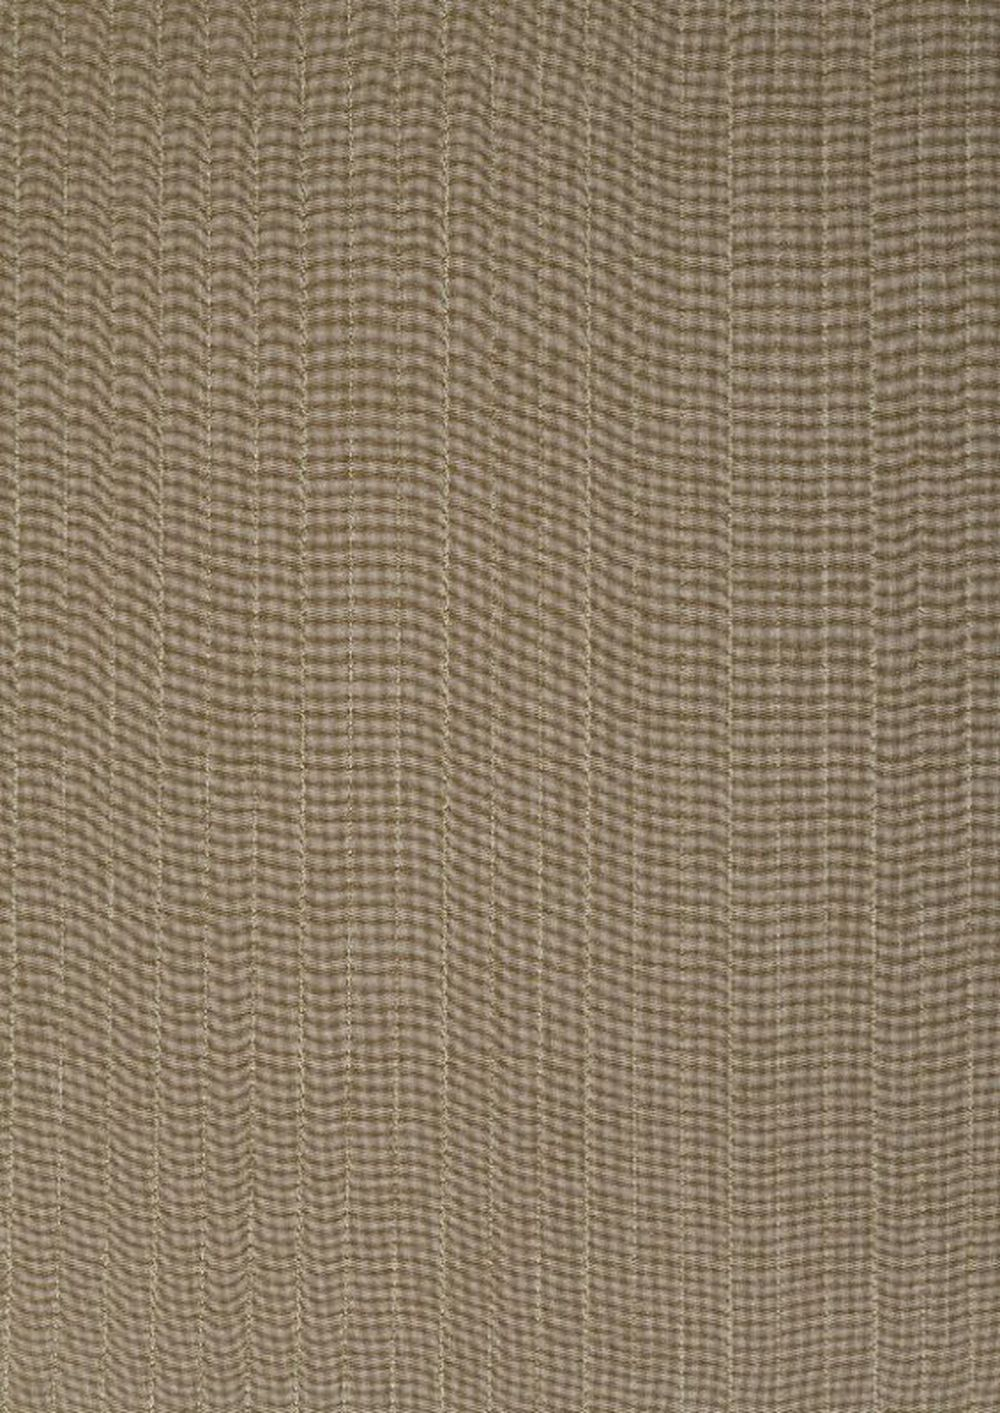 Photo of the fabric Rural FR-One Chinchilla swatch by FR-One. Use for Curtains, Accessory, Top of Bed. Style of Pattern, Stripe